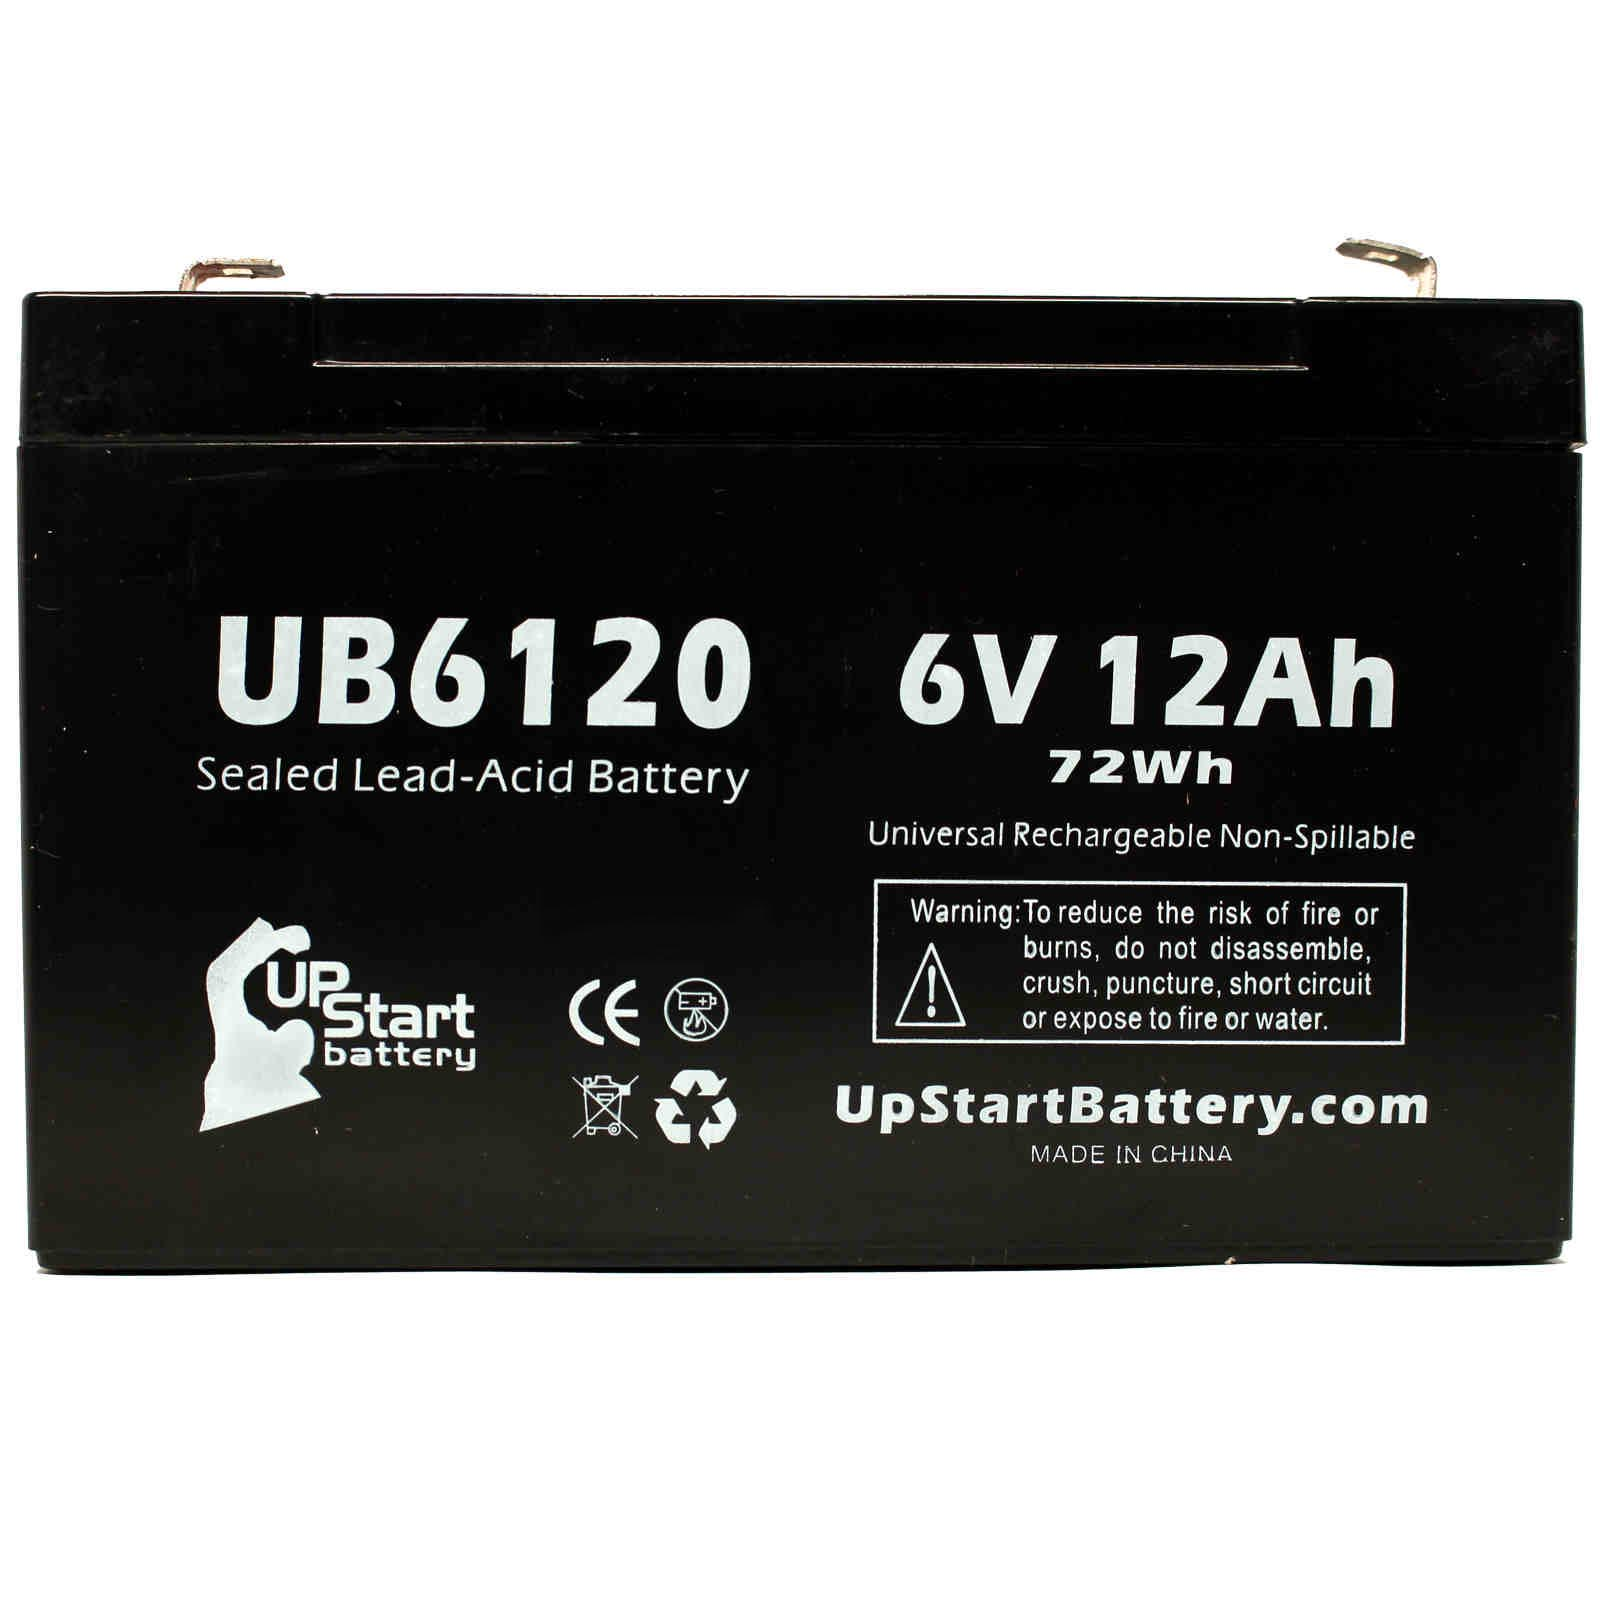 5x Pack - ACCESS BATTERY SLA6100 Battery Replacement - UB6120 Universal Sealed Lead Acid Battery (6V, 12Ah, 12000mAh, F1 Terminal, AGM, SLA) - Includes 10 F1 to F2 Terminal Adapters - image 3 de 4